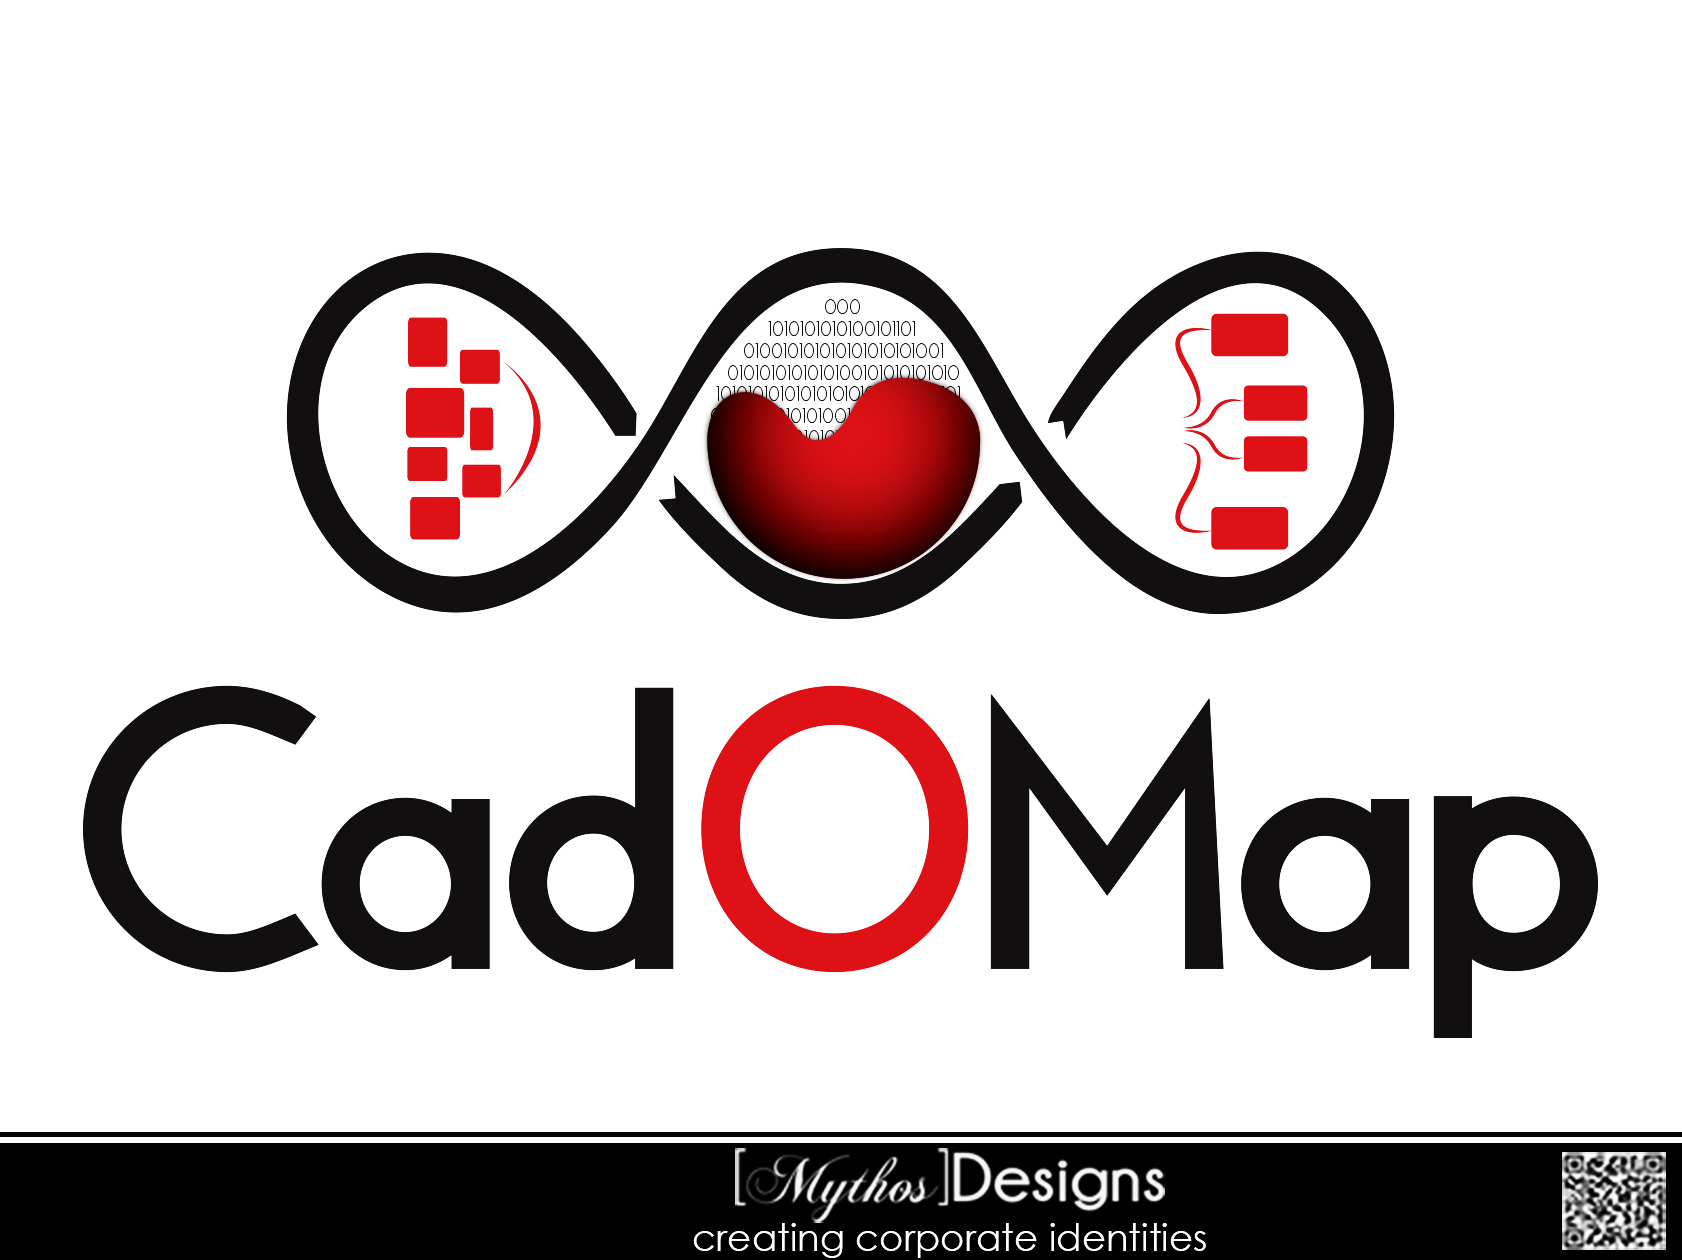 Logo Design by Mythos Designs - Entry No. 98 in the Logo Design Contest Captivating Logo Design for CadOMap software product.